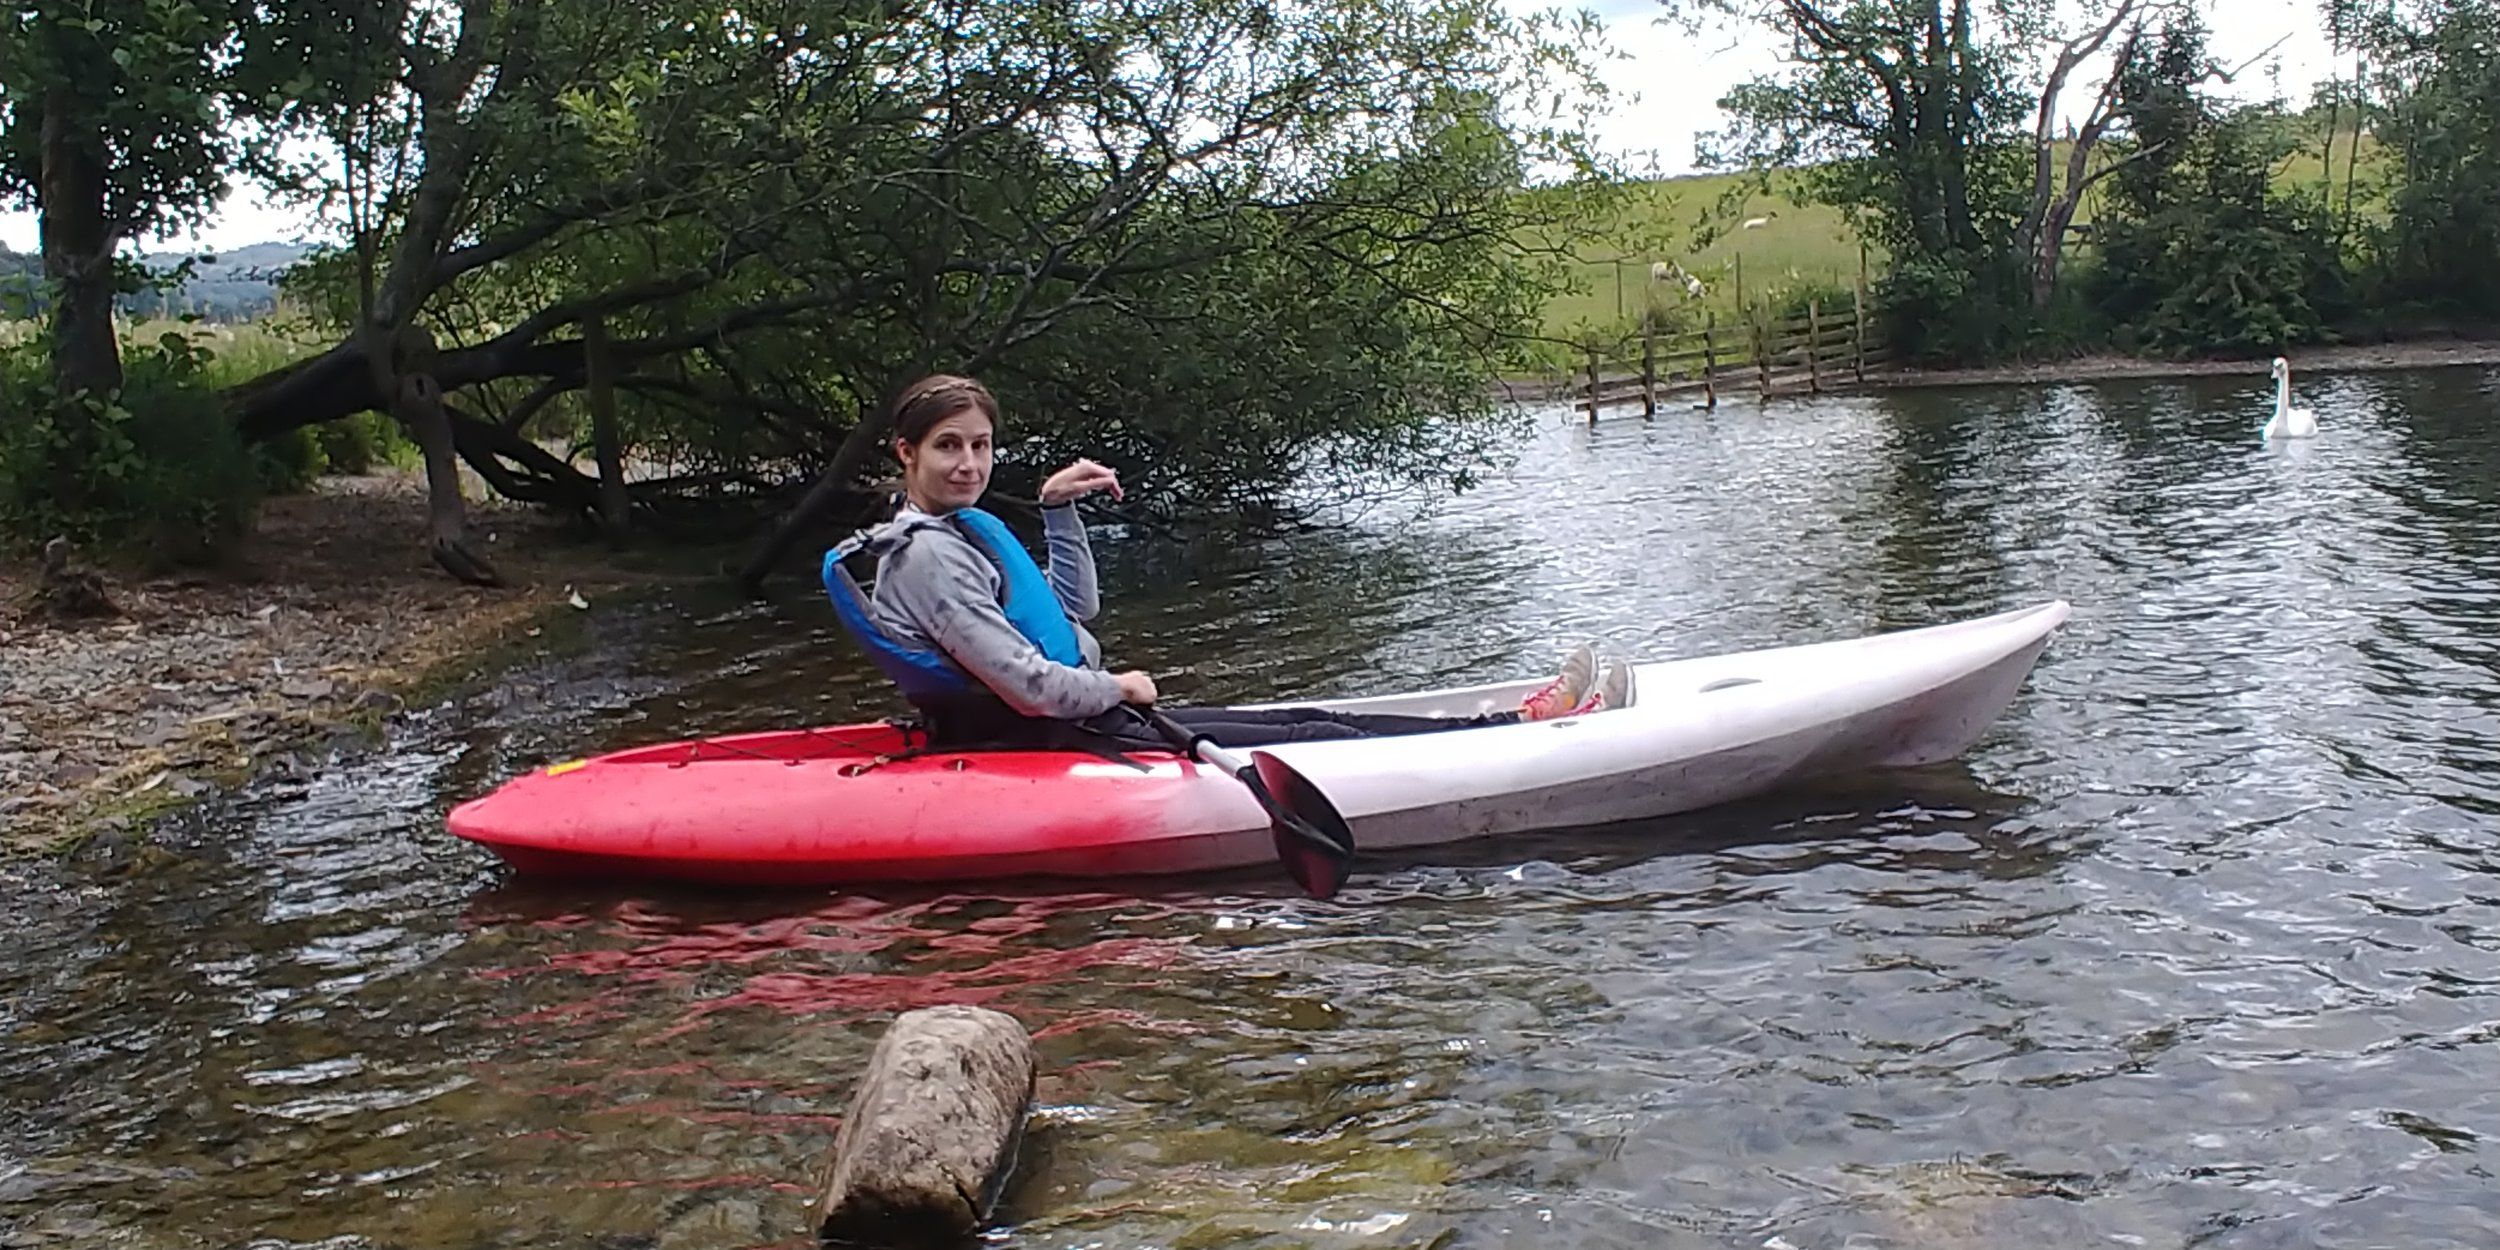 I think I'm pretending to be a swan here.